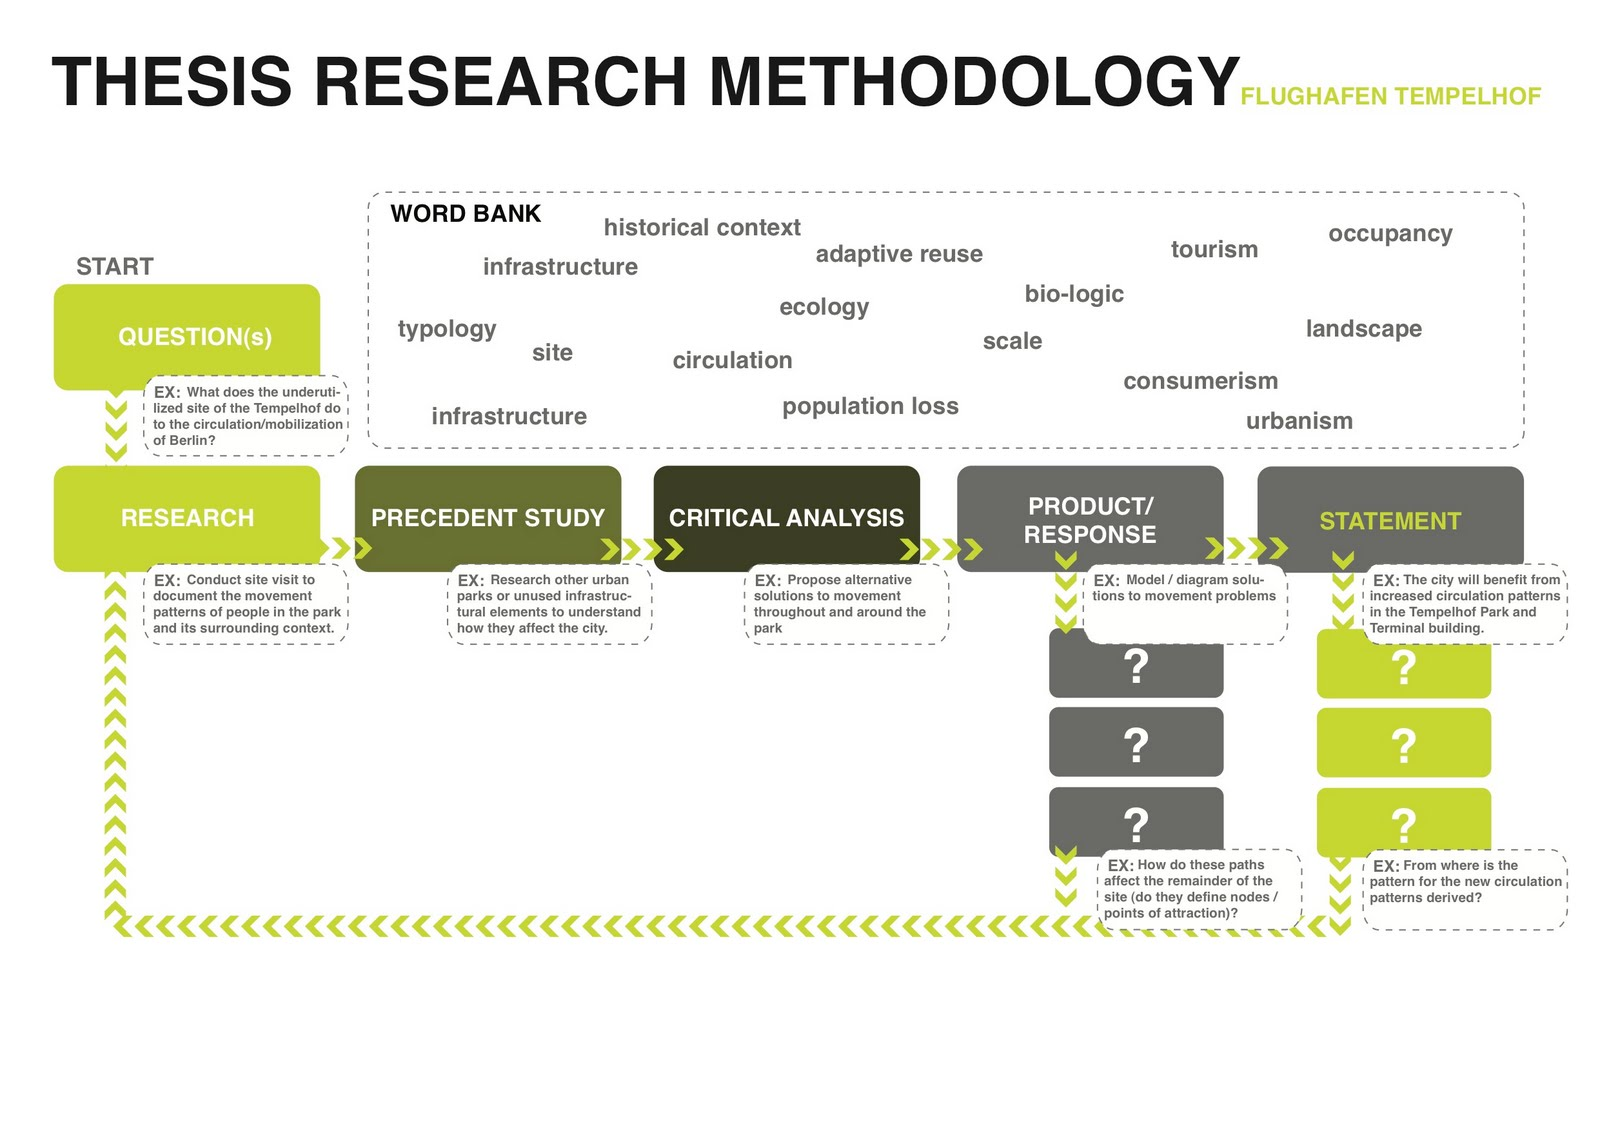 research methodology chapter of thesis